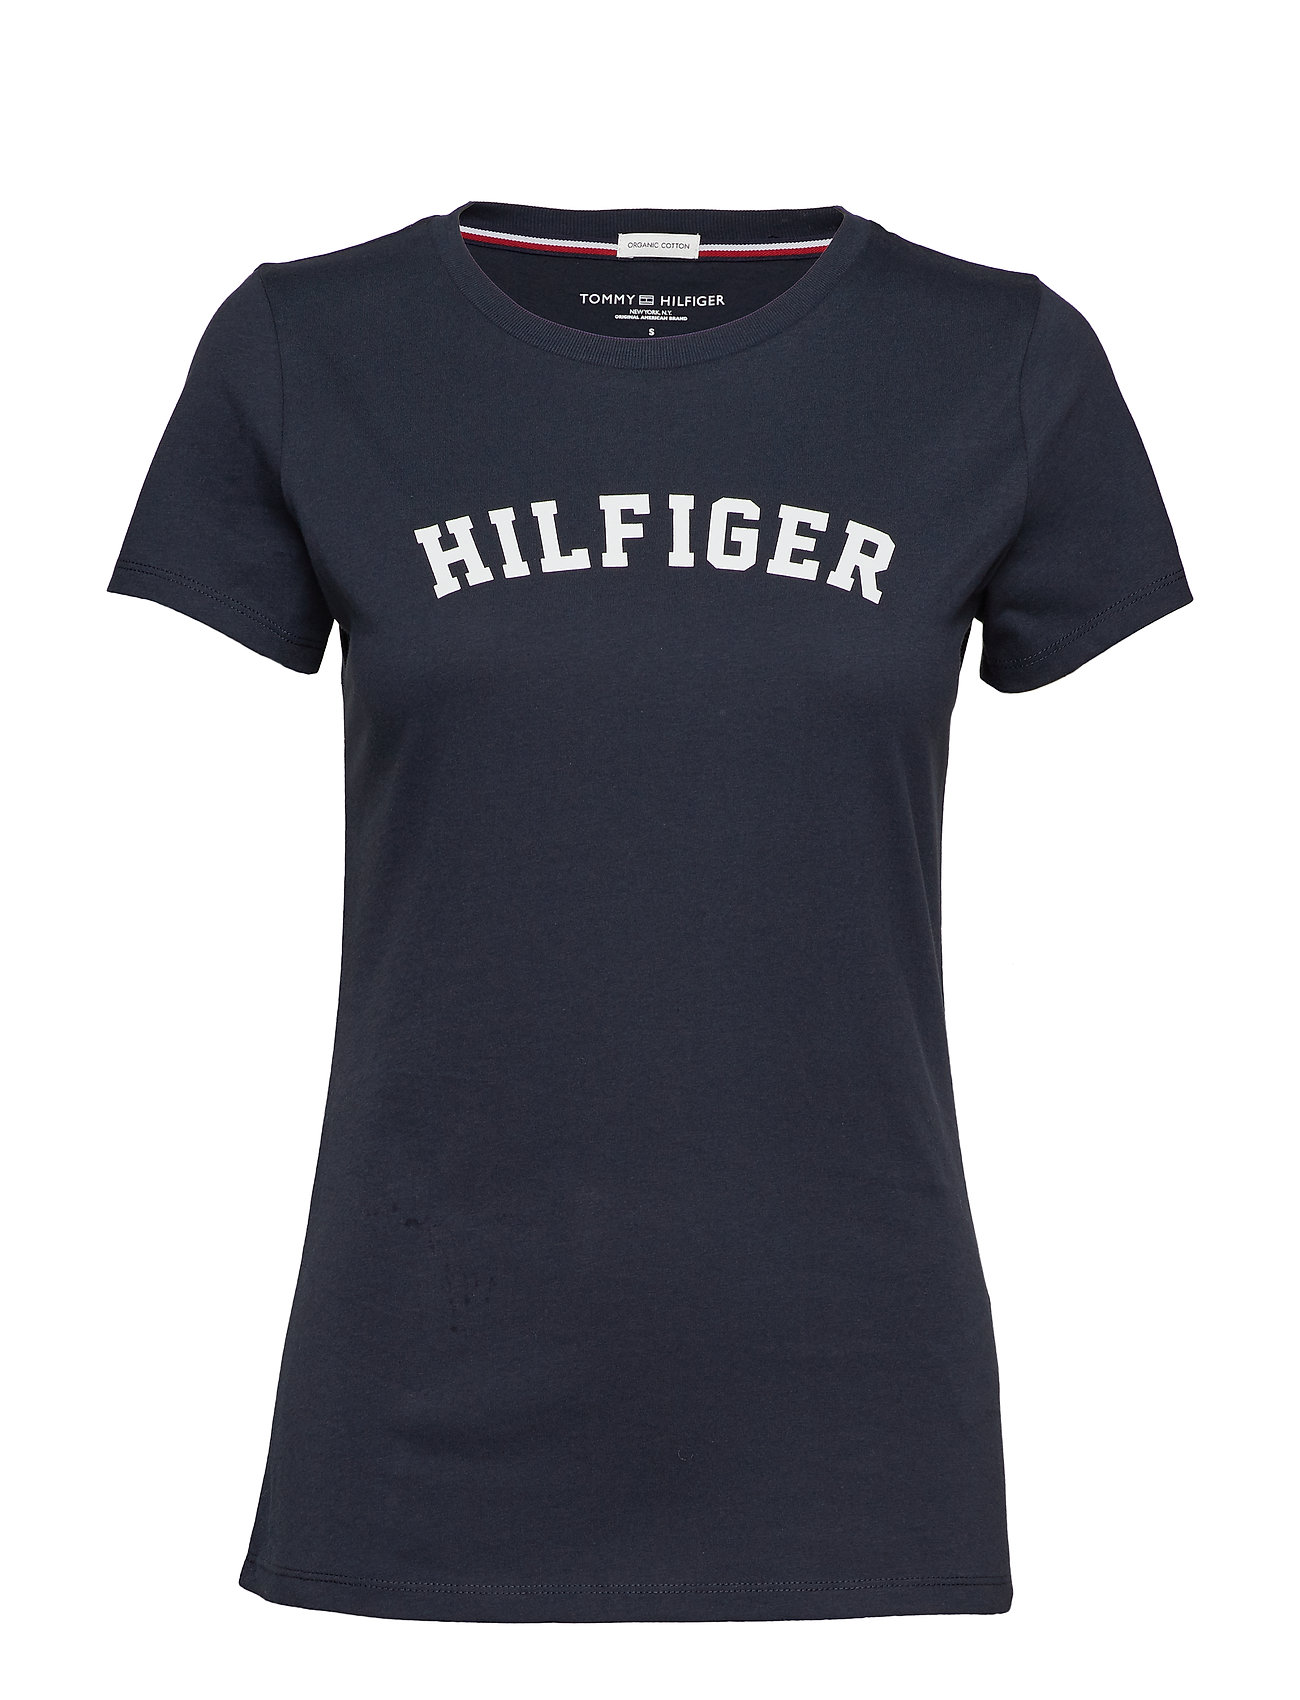 Image of Ss Tee Print T-shirt Top Blå Tommy Hilfiger (3200533221)